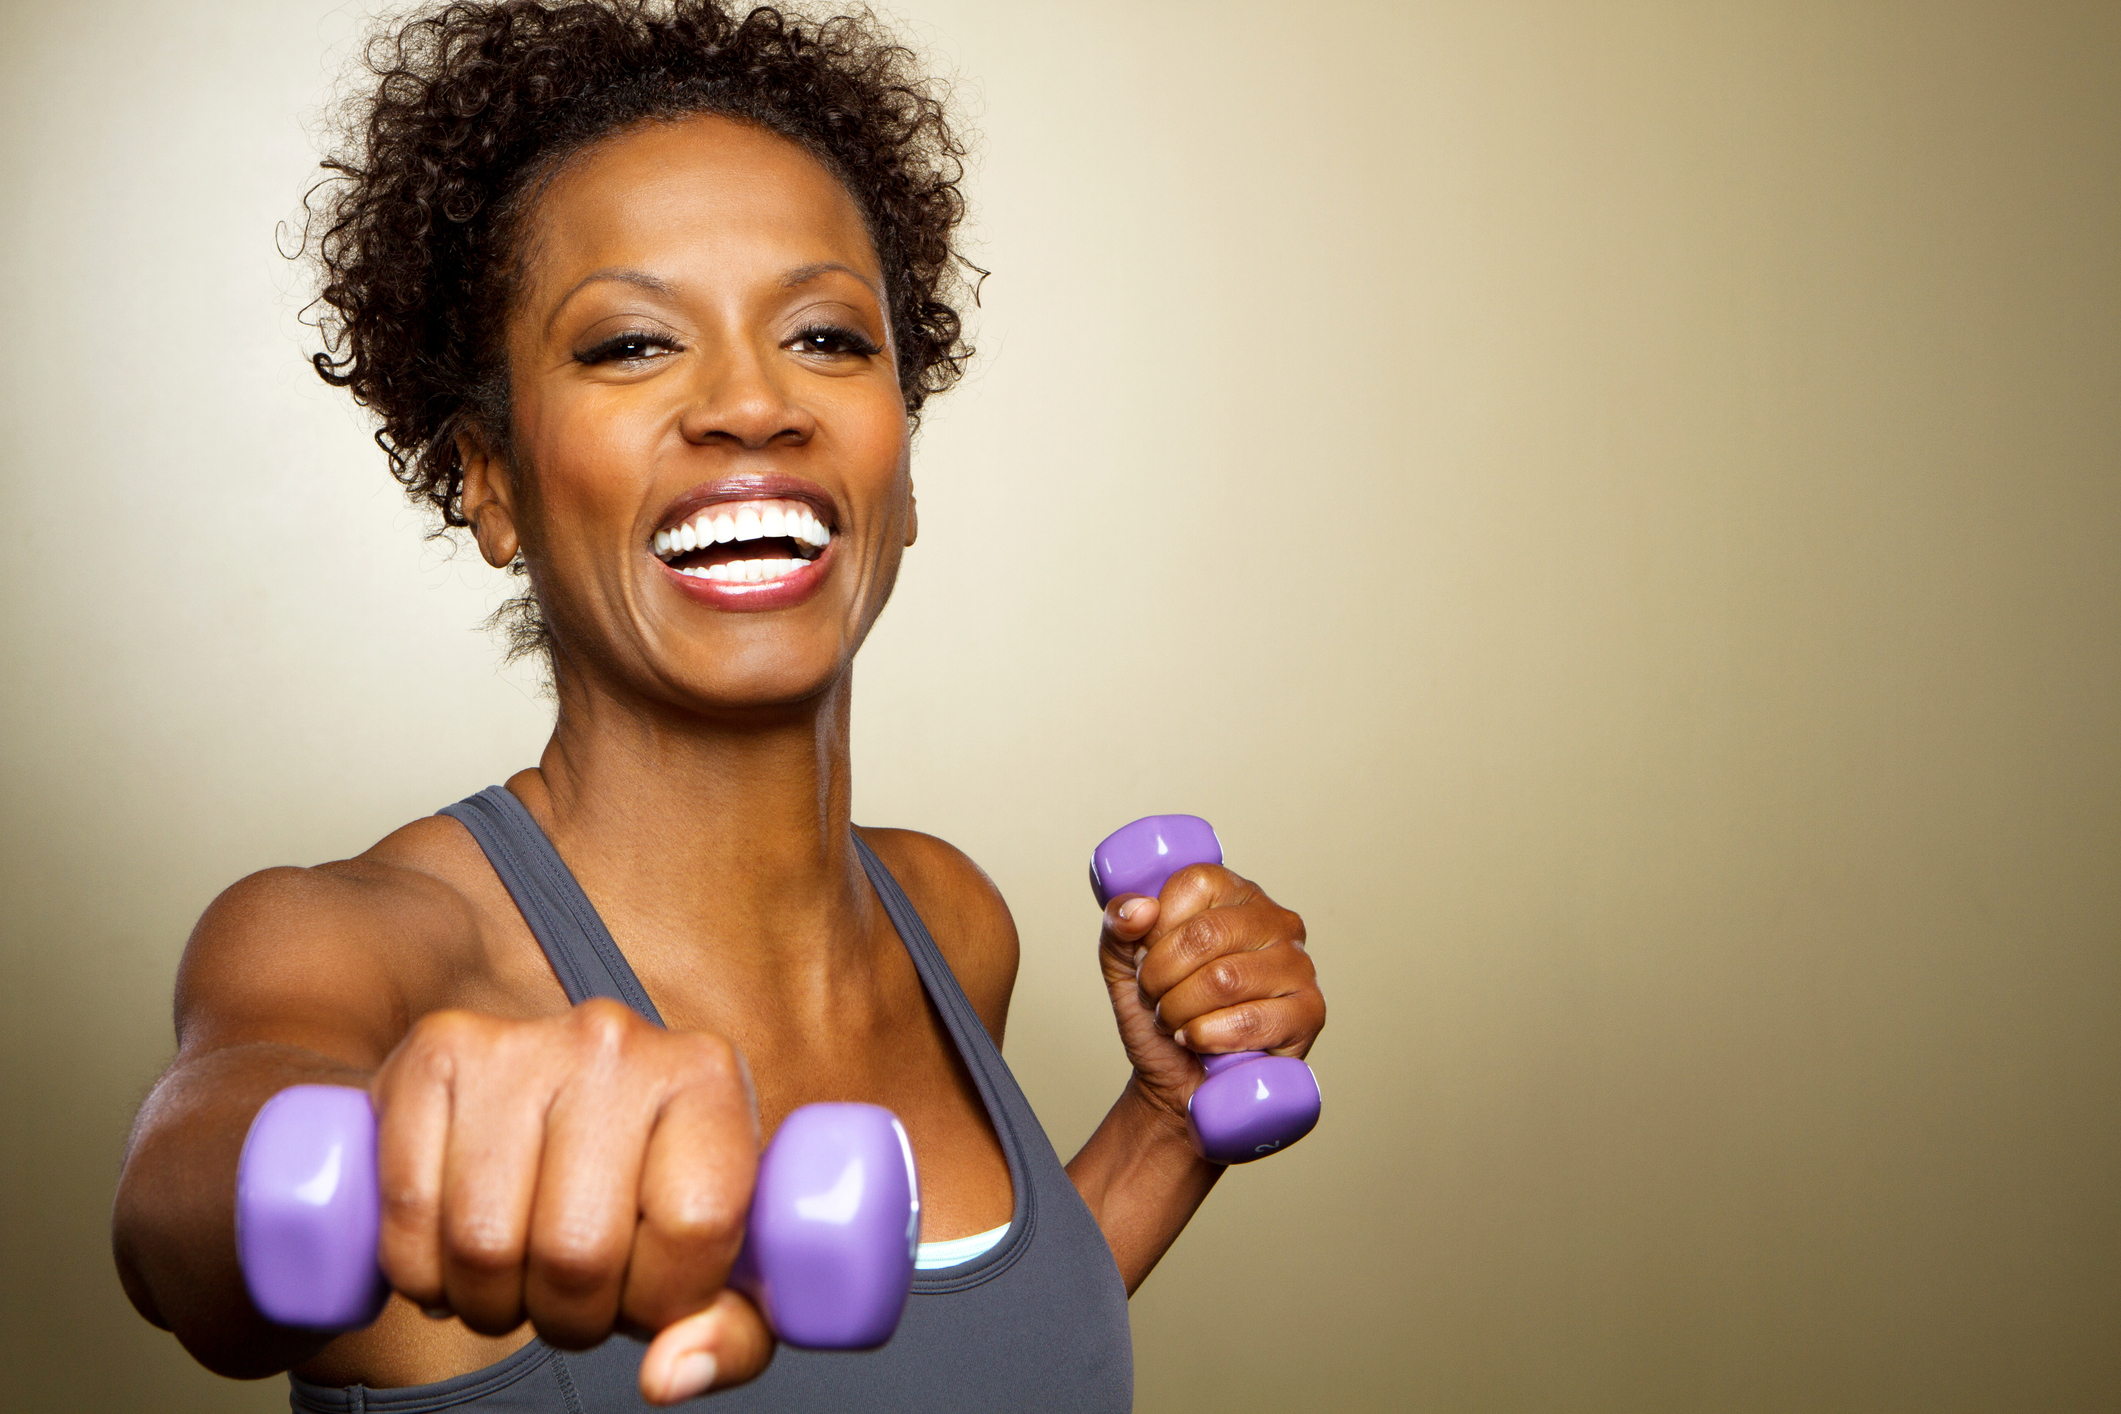 The surprisingly big benefits of starting exercise later in life